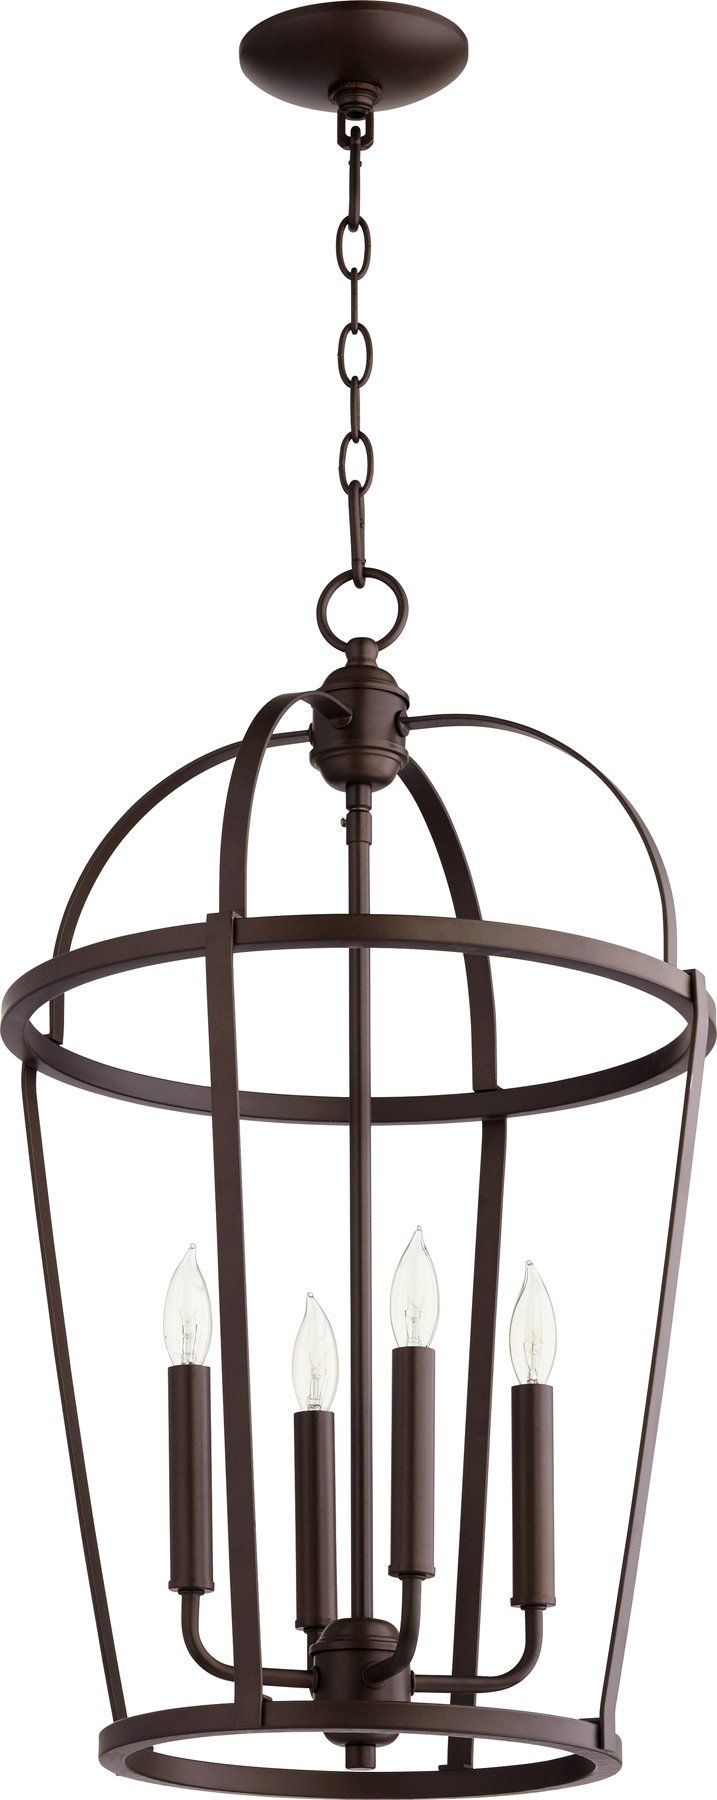 Mitre entry light foyer pendant pendants and products